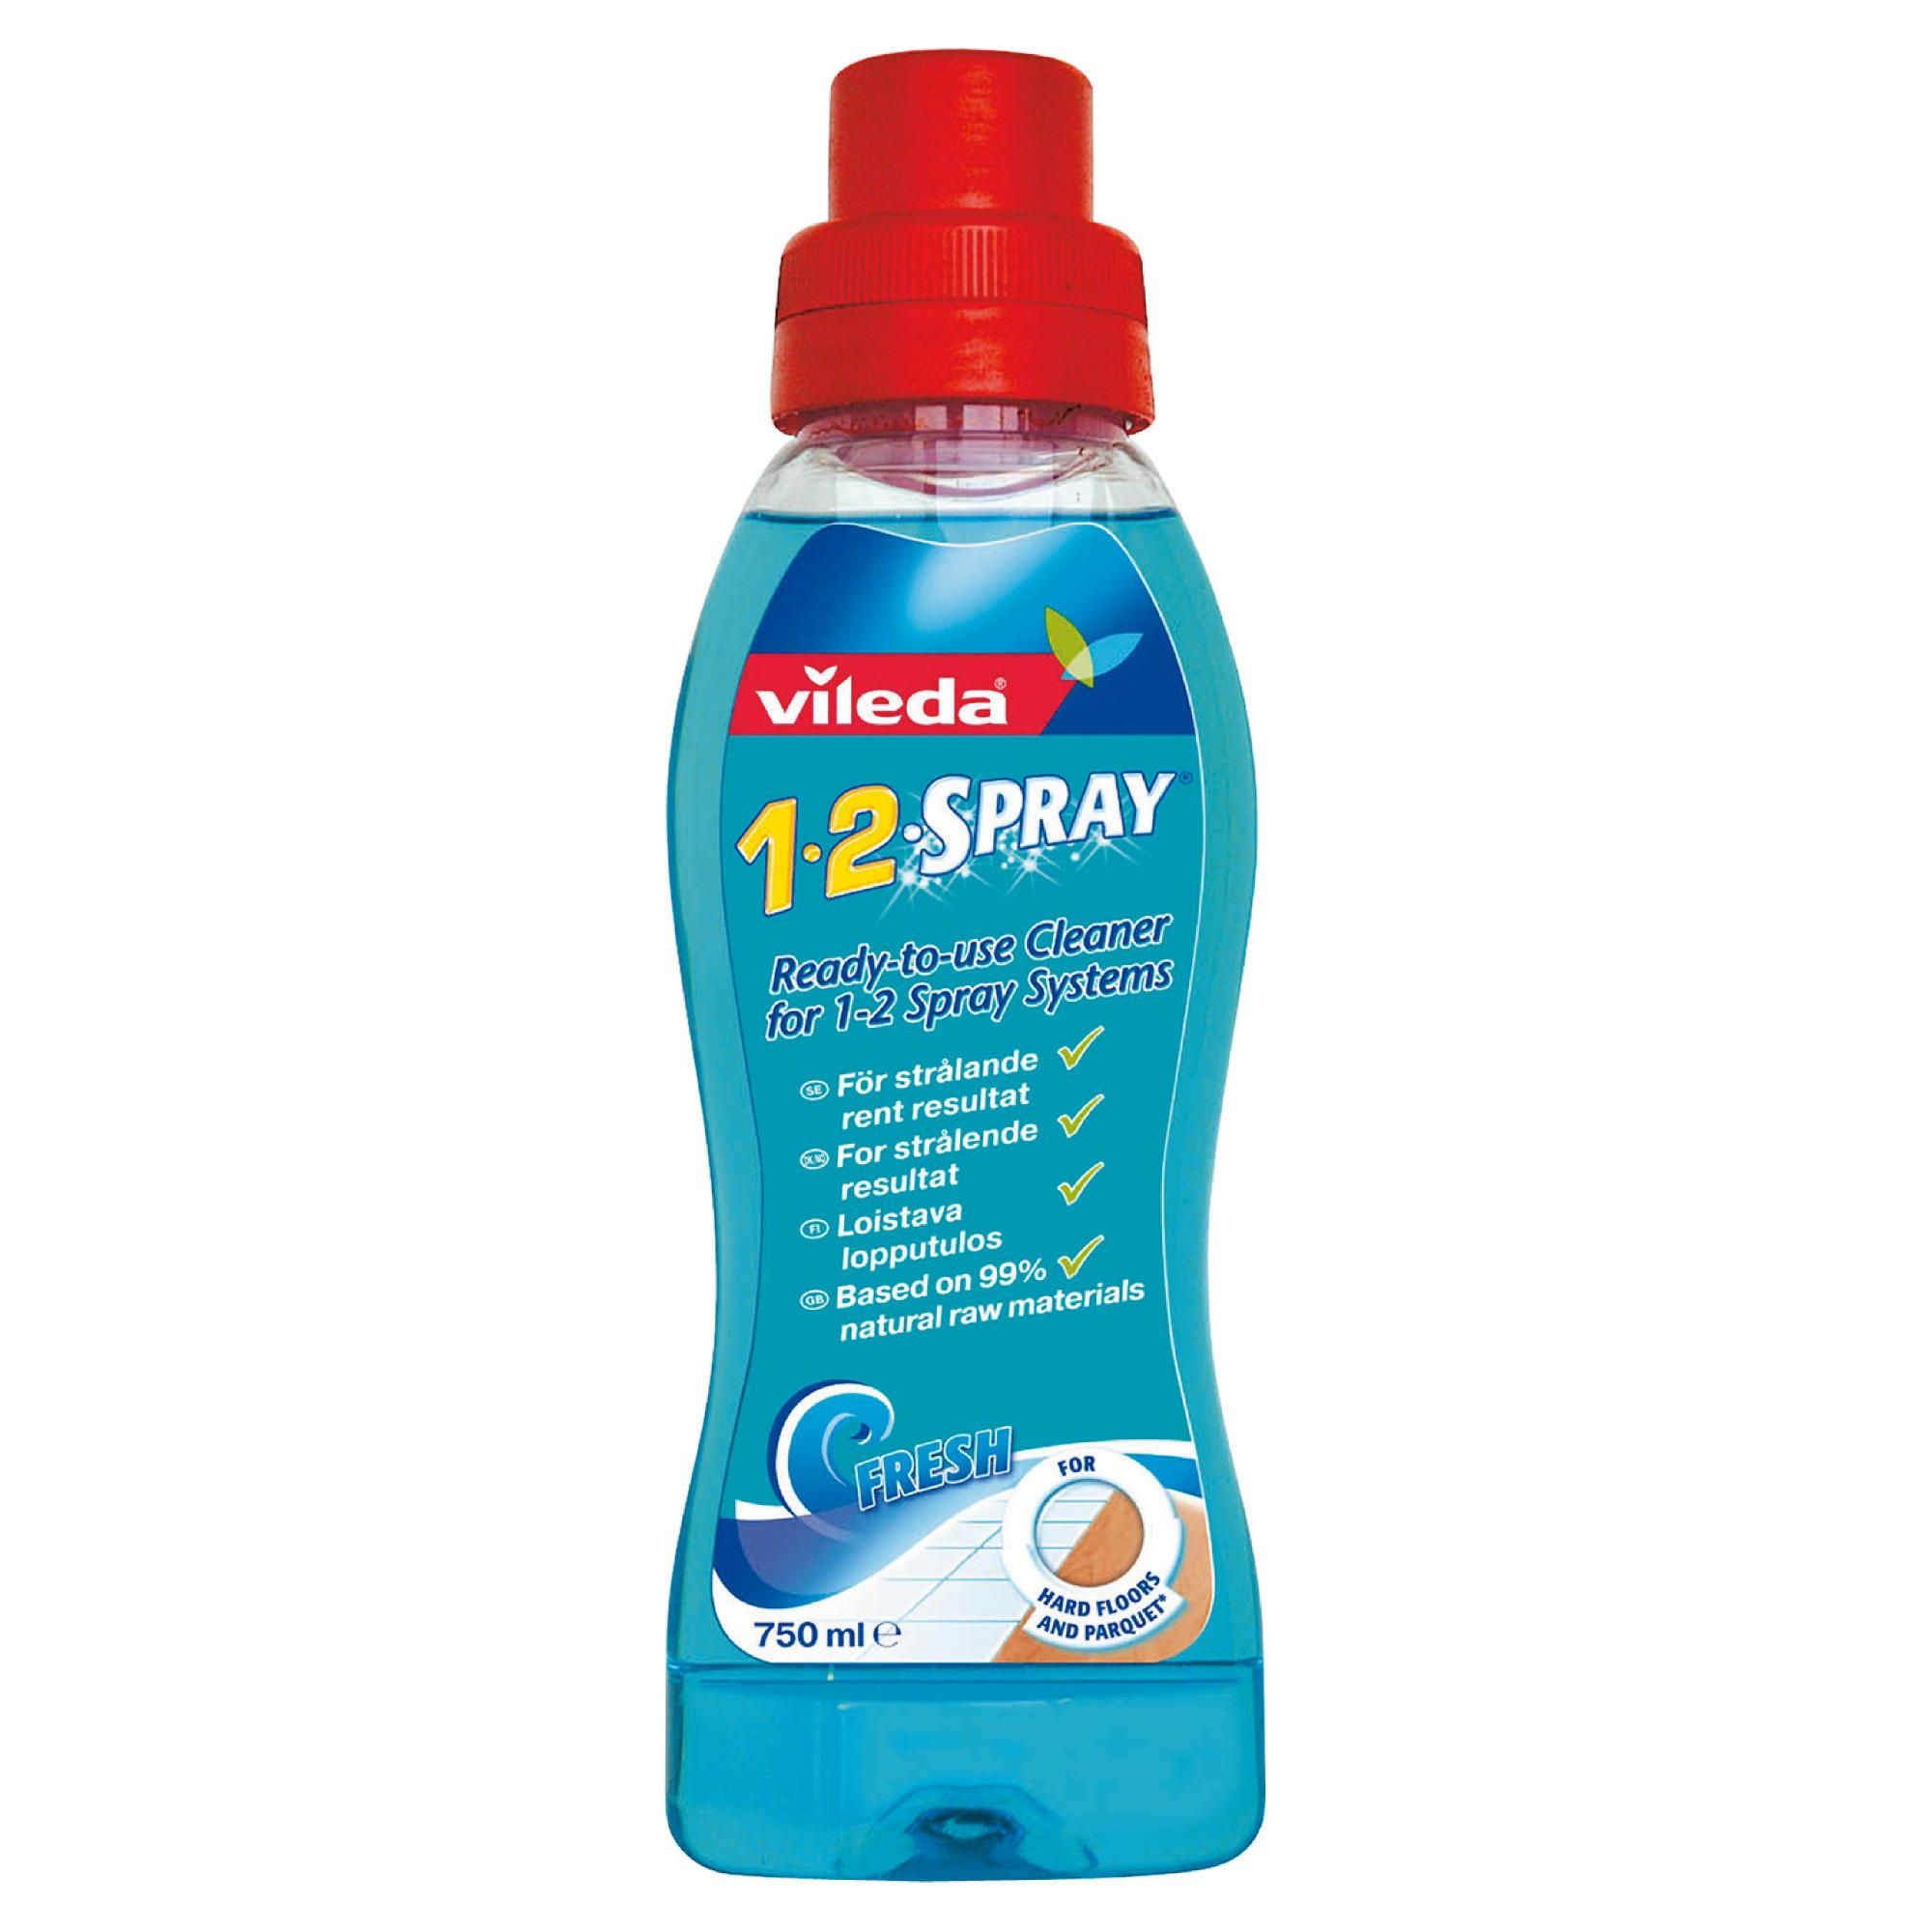 Vileda 1 2 Spray Liquid Refill